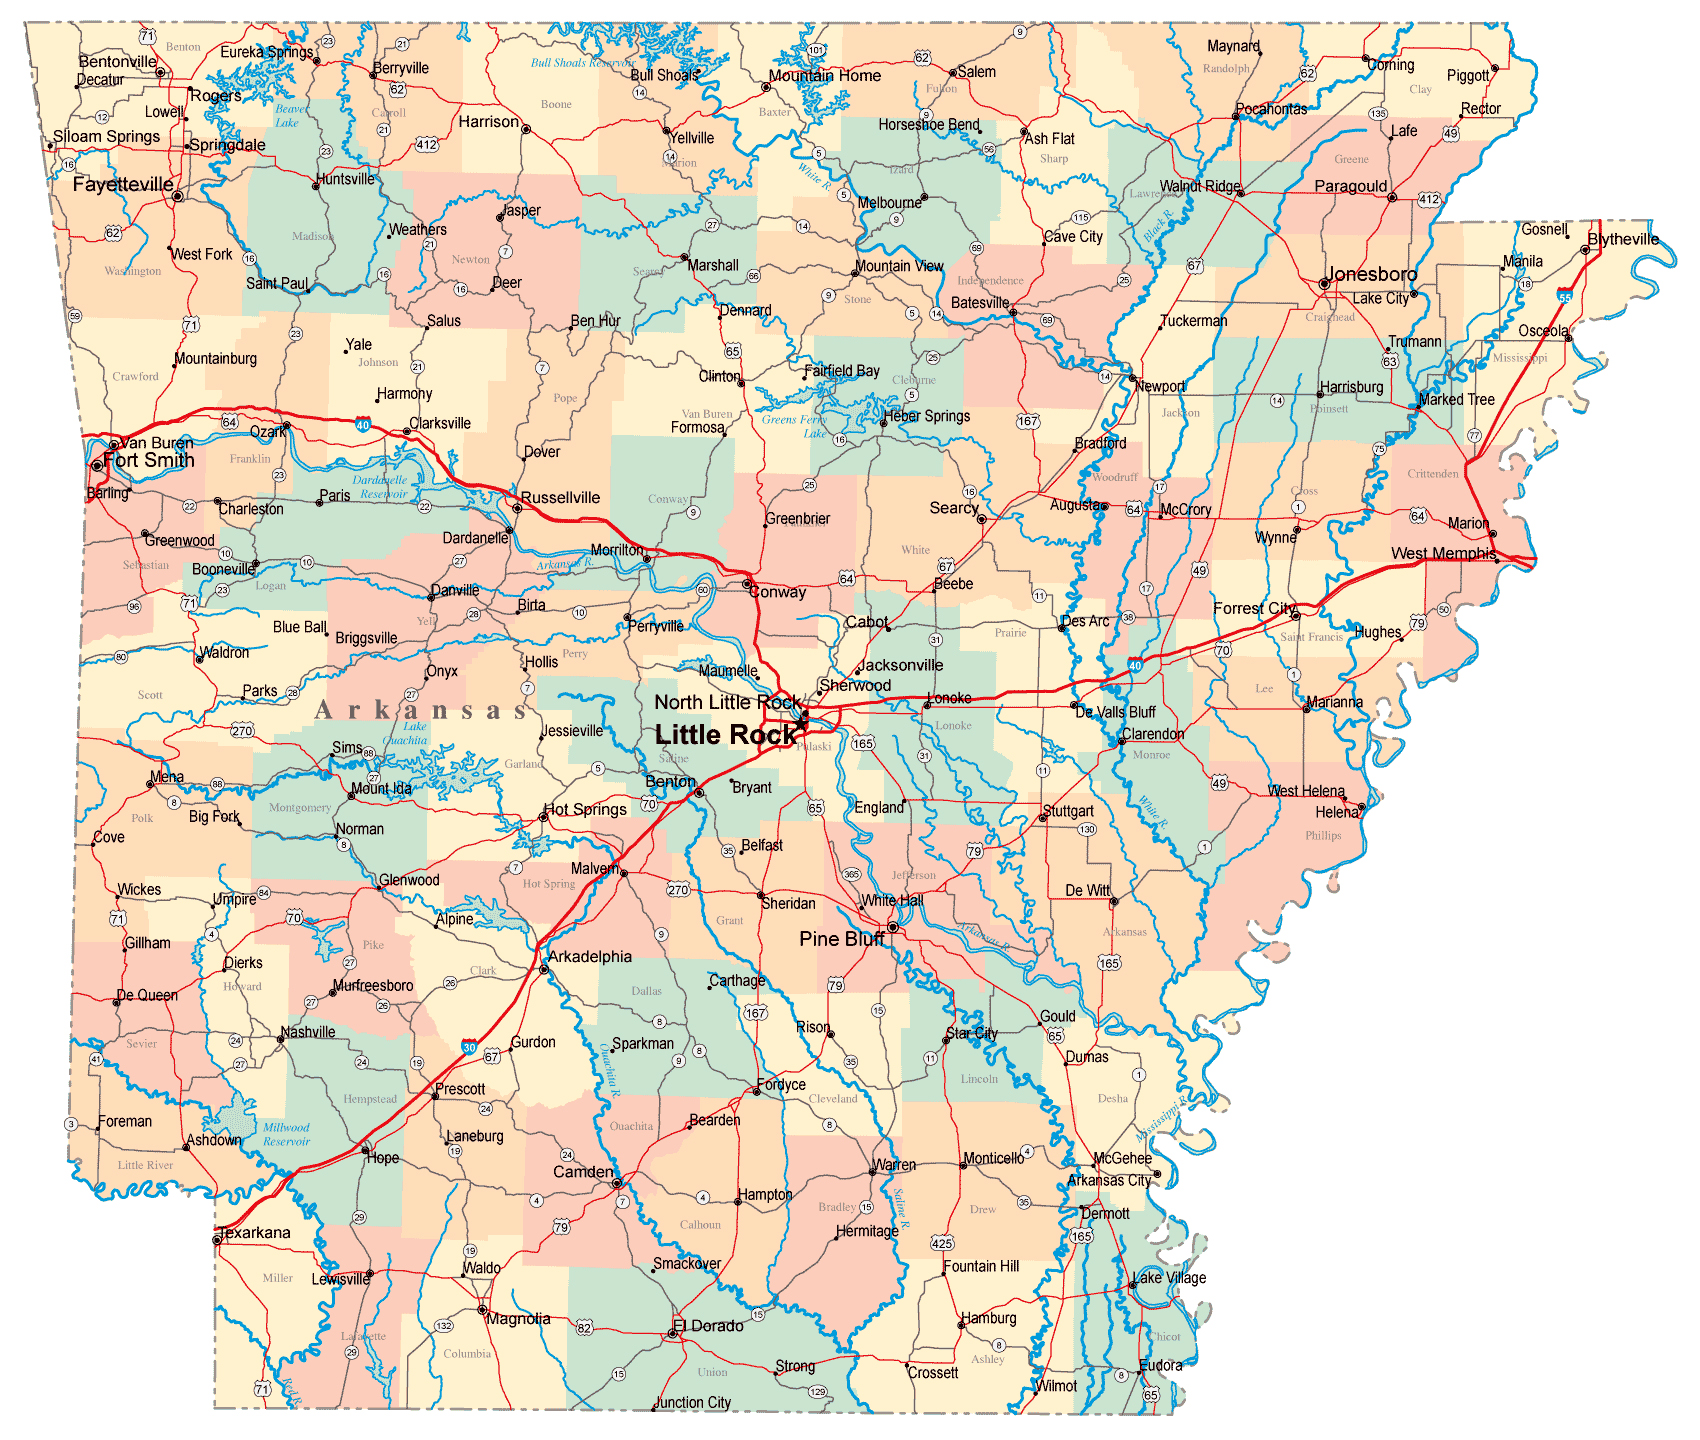 Detailed Administrative And Road Map Of Arkansas With Cities - Arkansas relief map